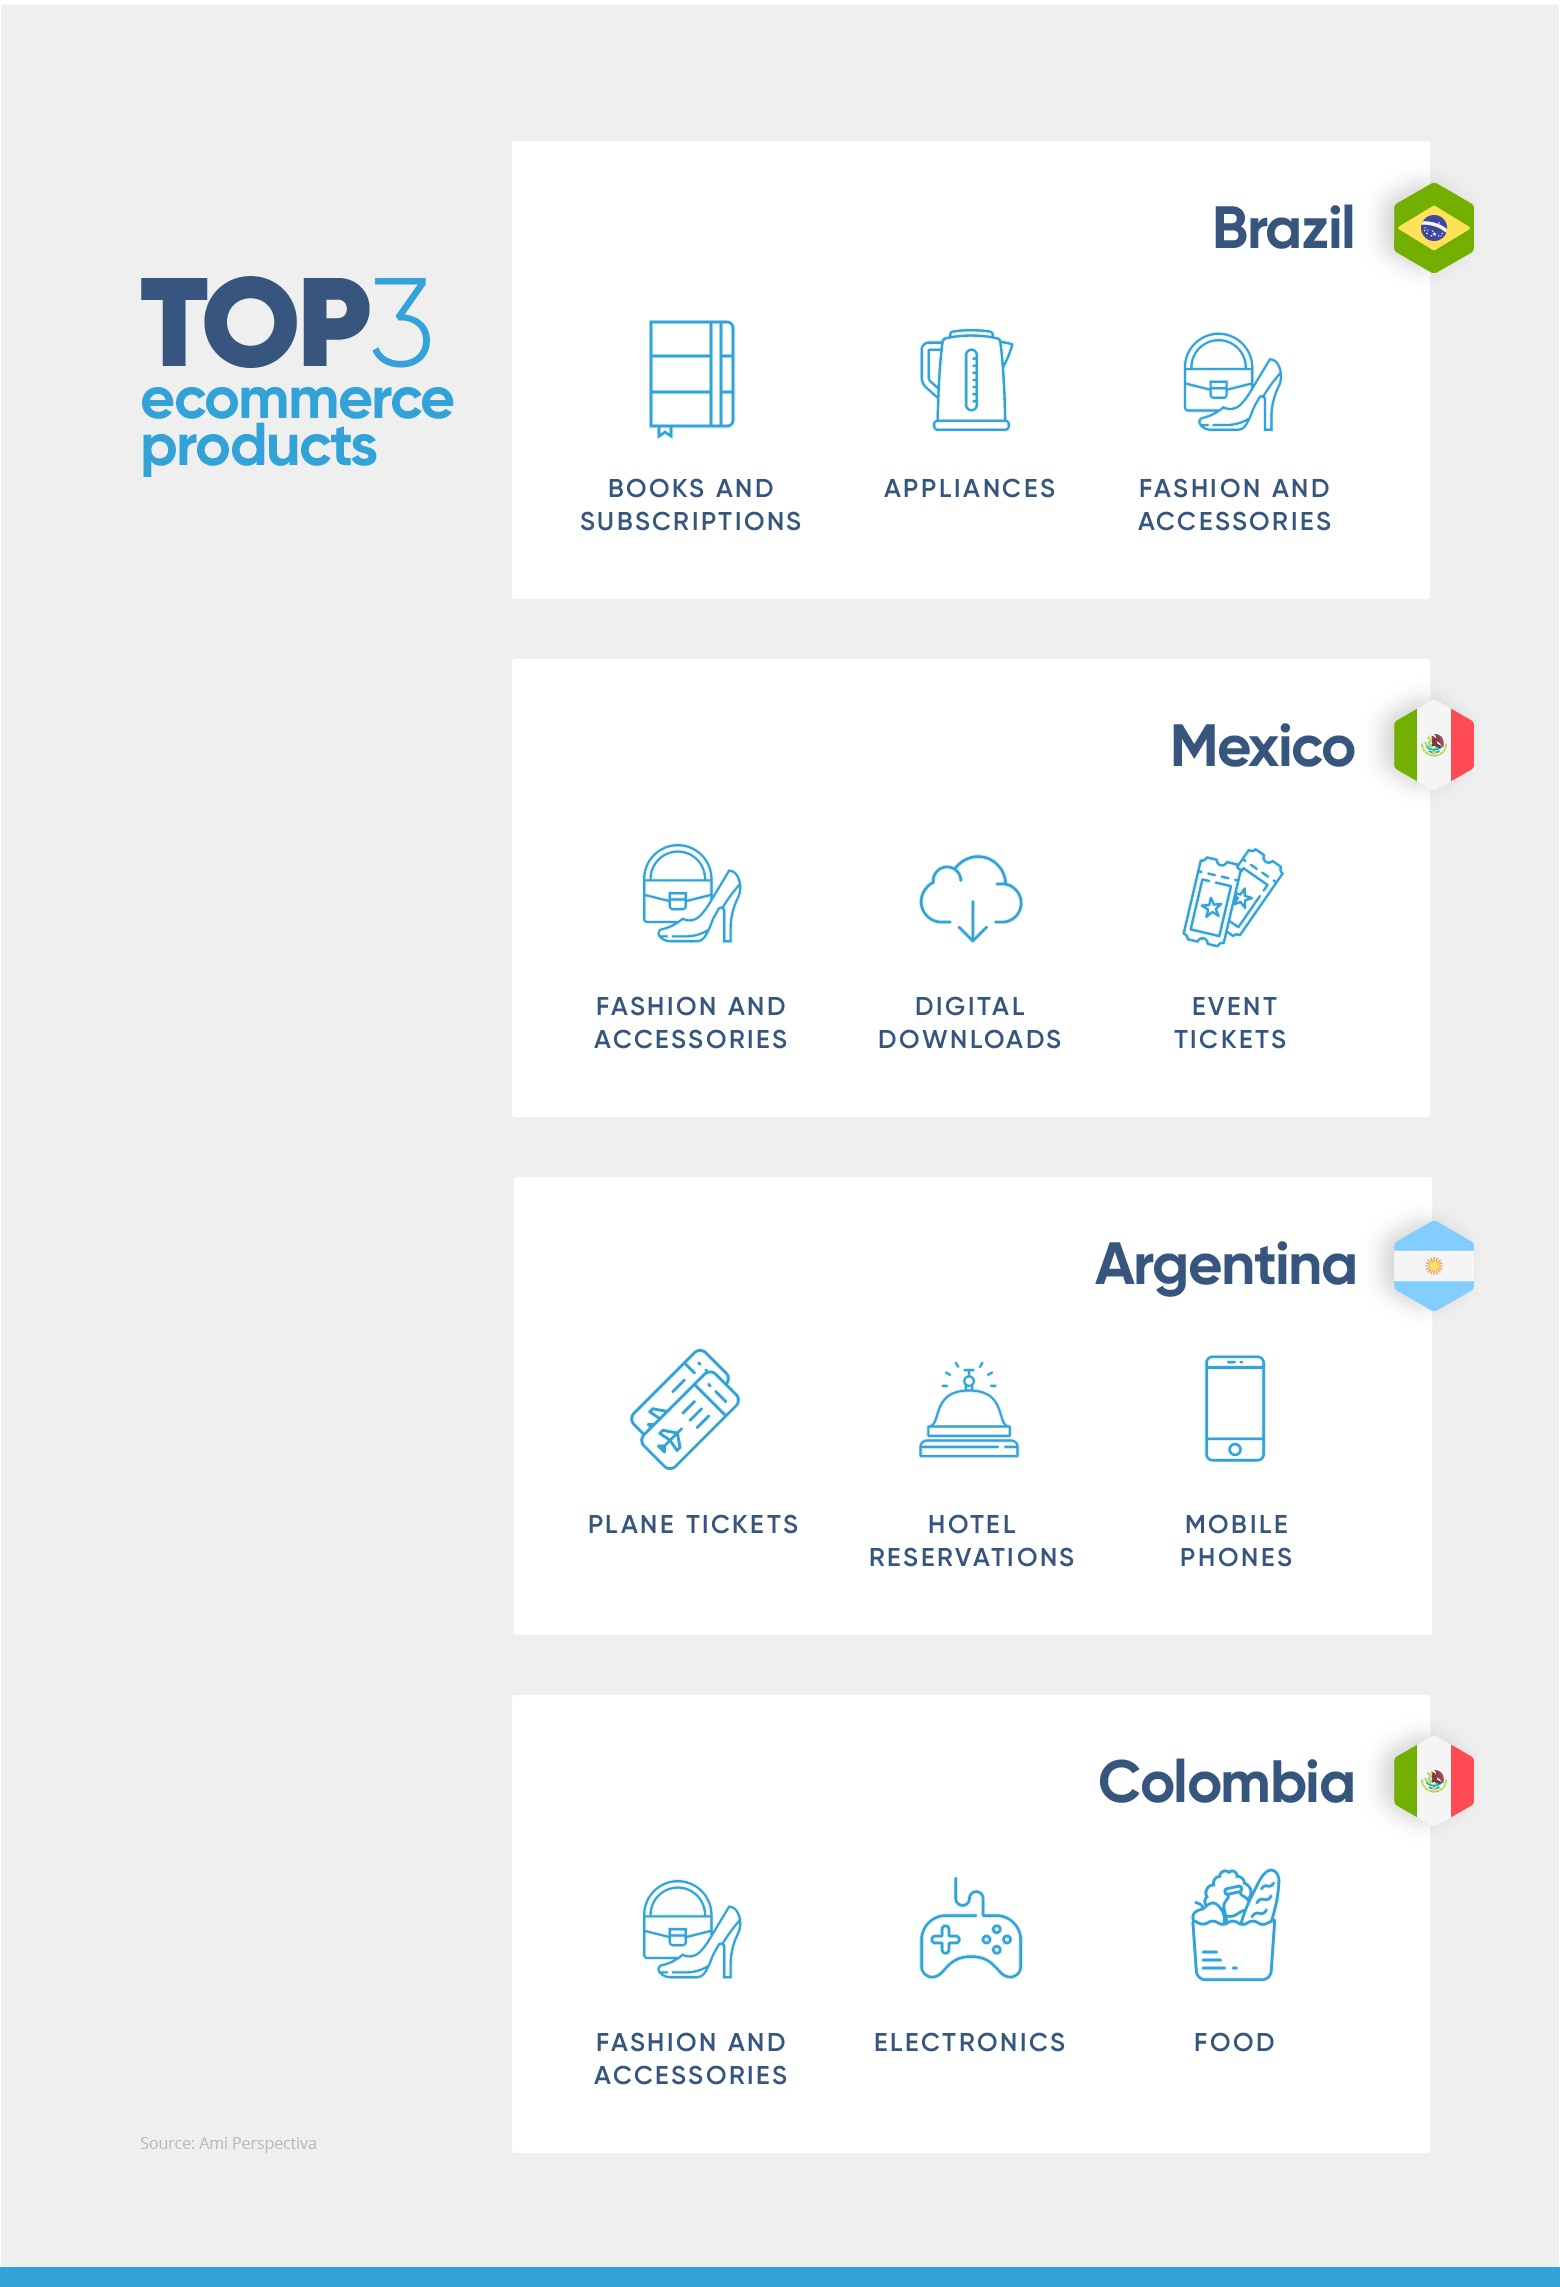 ecommerce-in-latin-america-top-3-ecommerce-products-2x.jpg